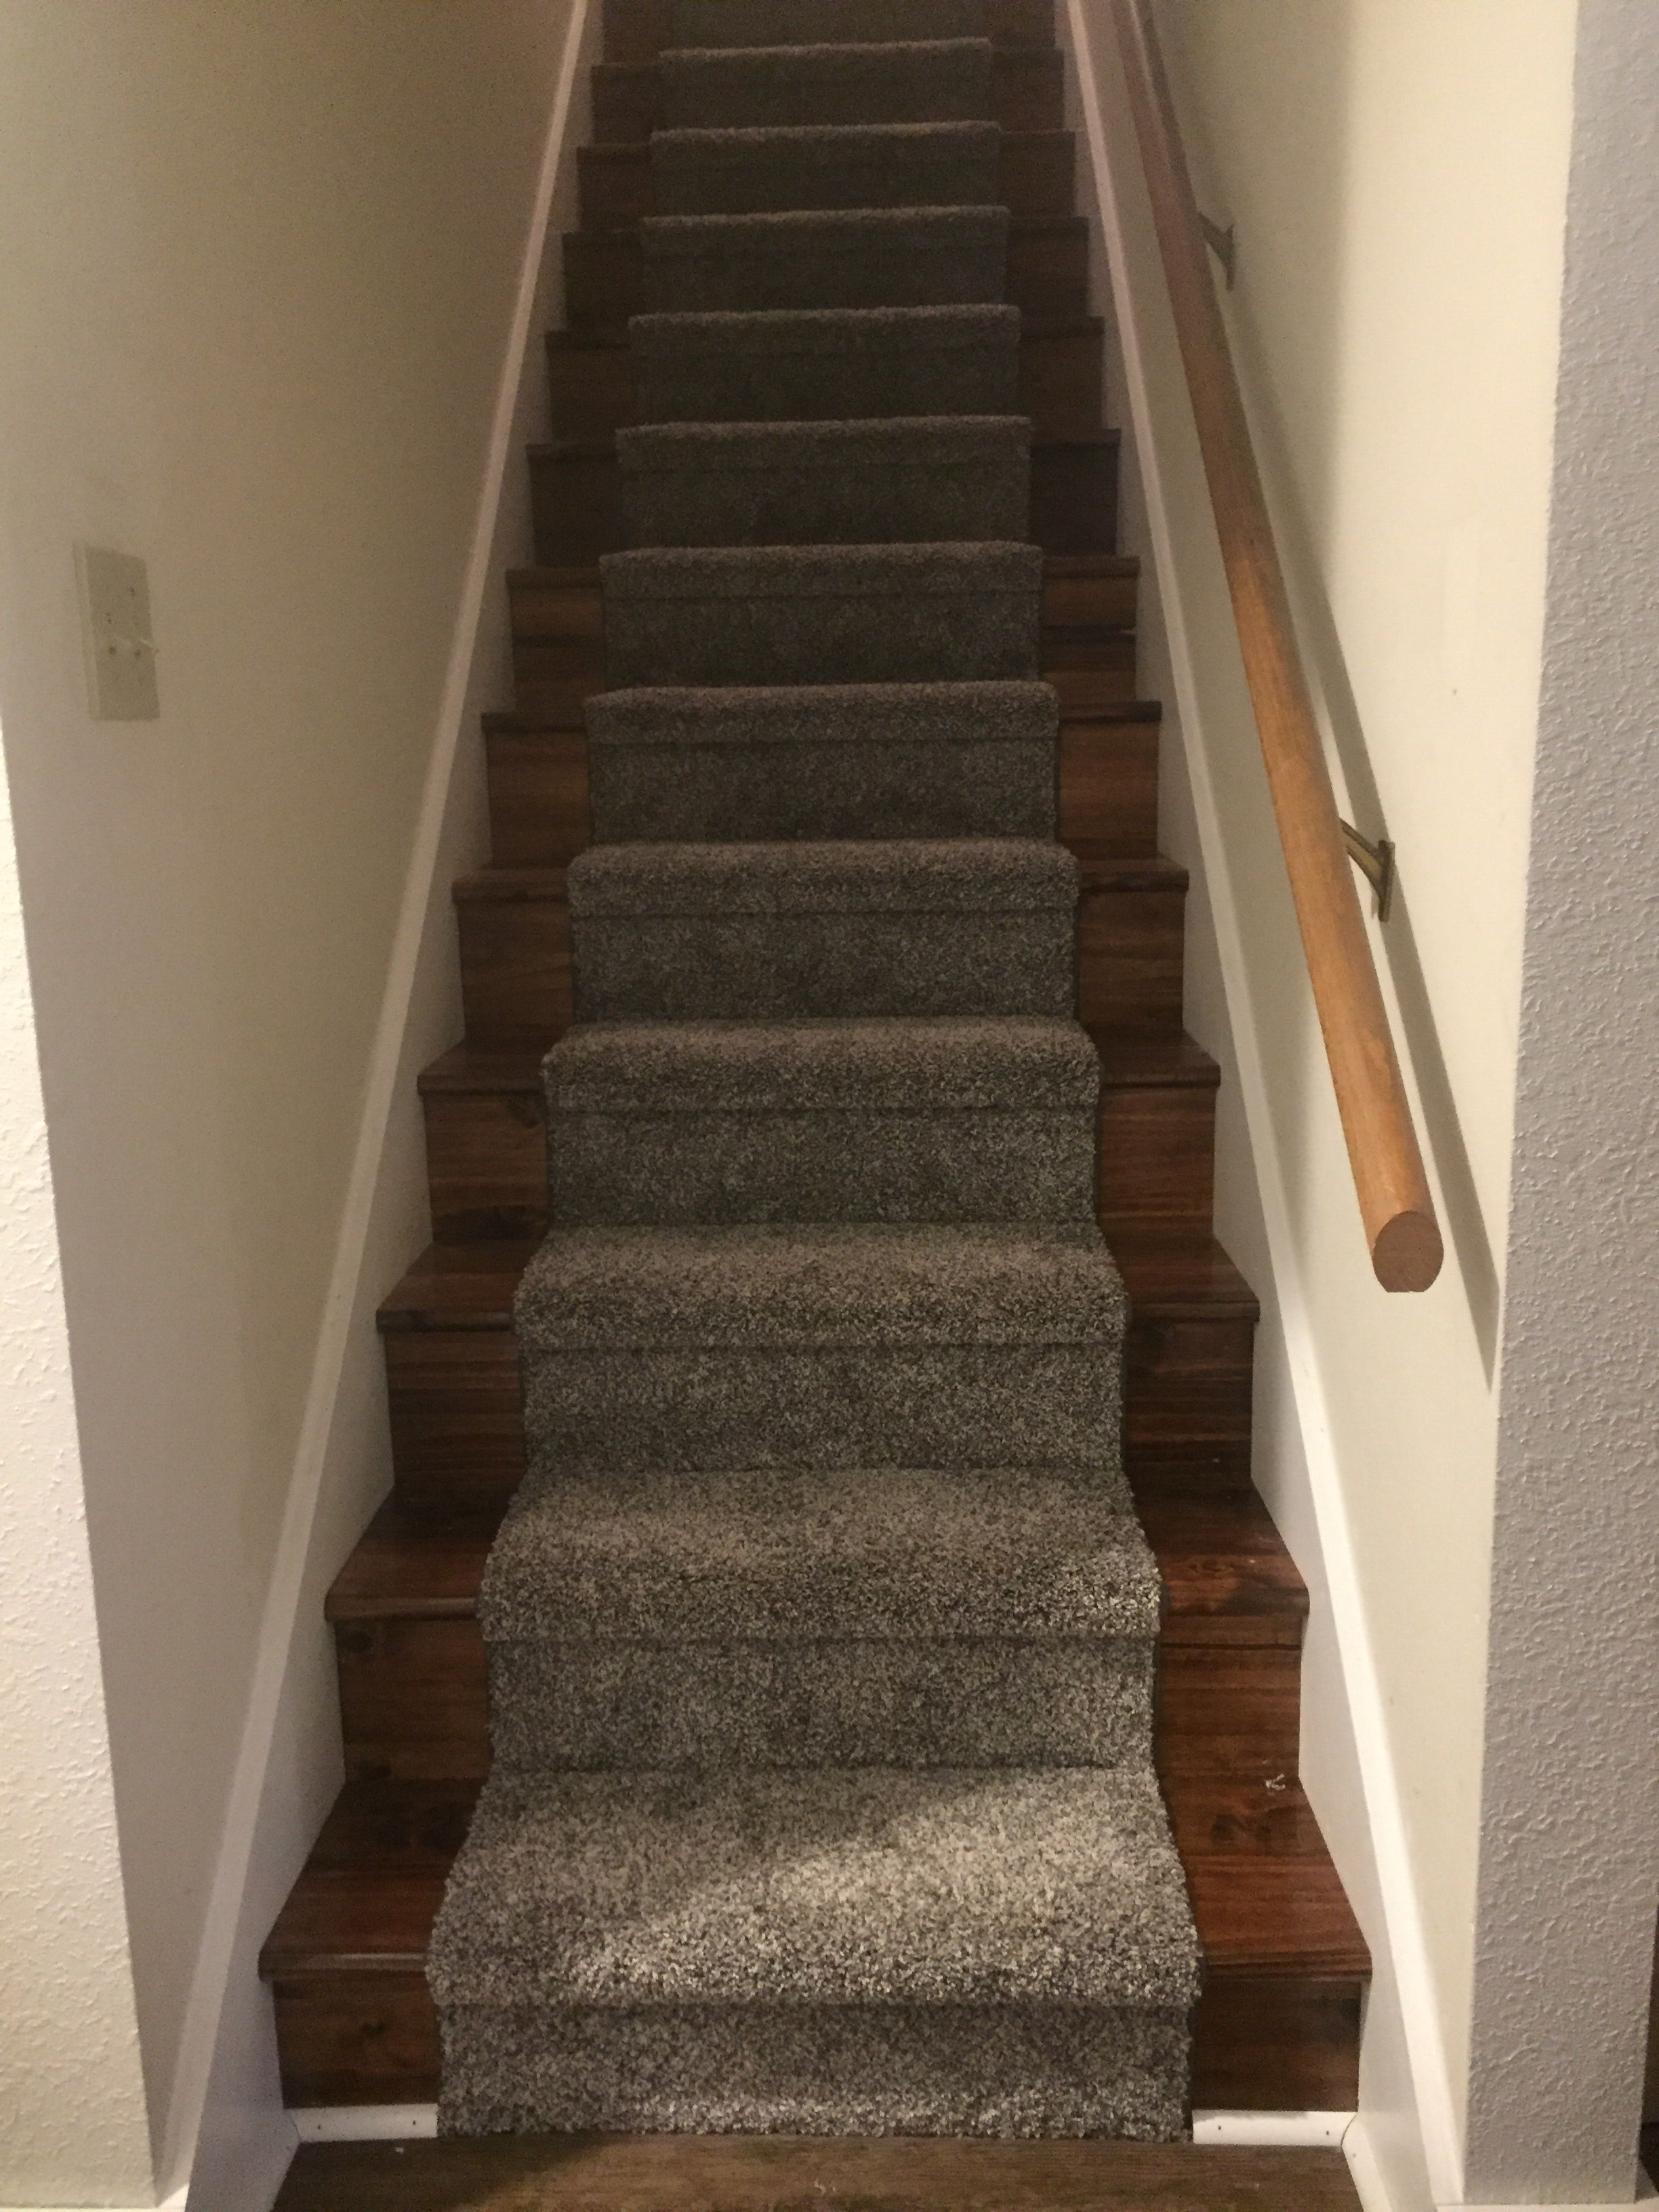 Carpeted Stairs With Runner And Stained Steps Stair Runner Carpet Stairs Wall Carpet